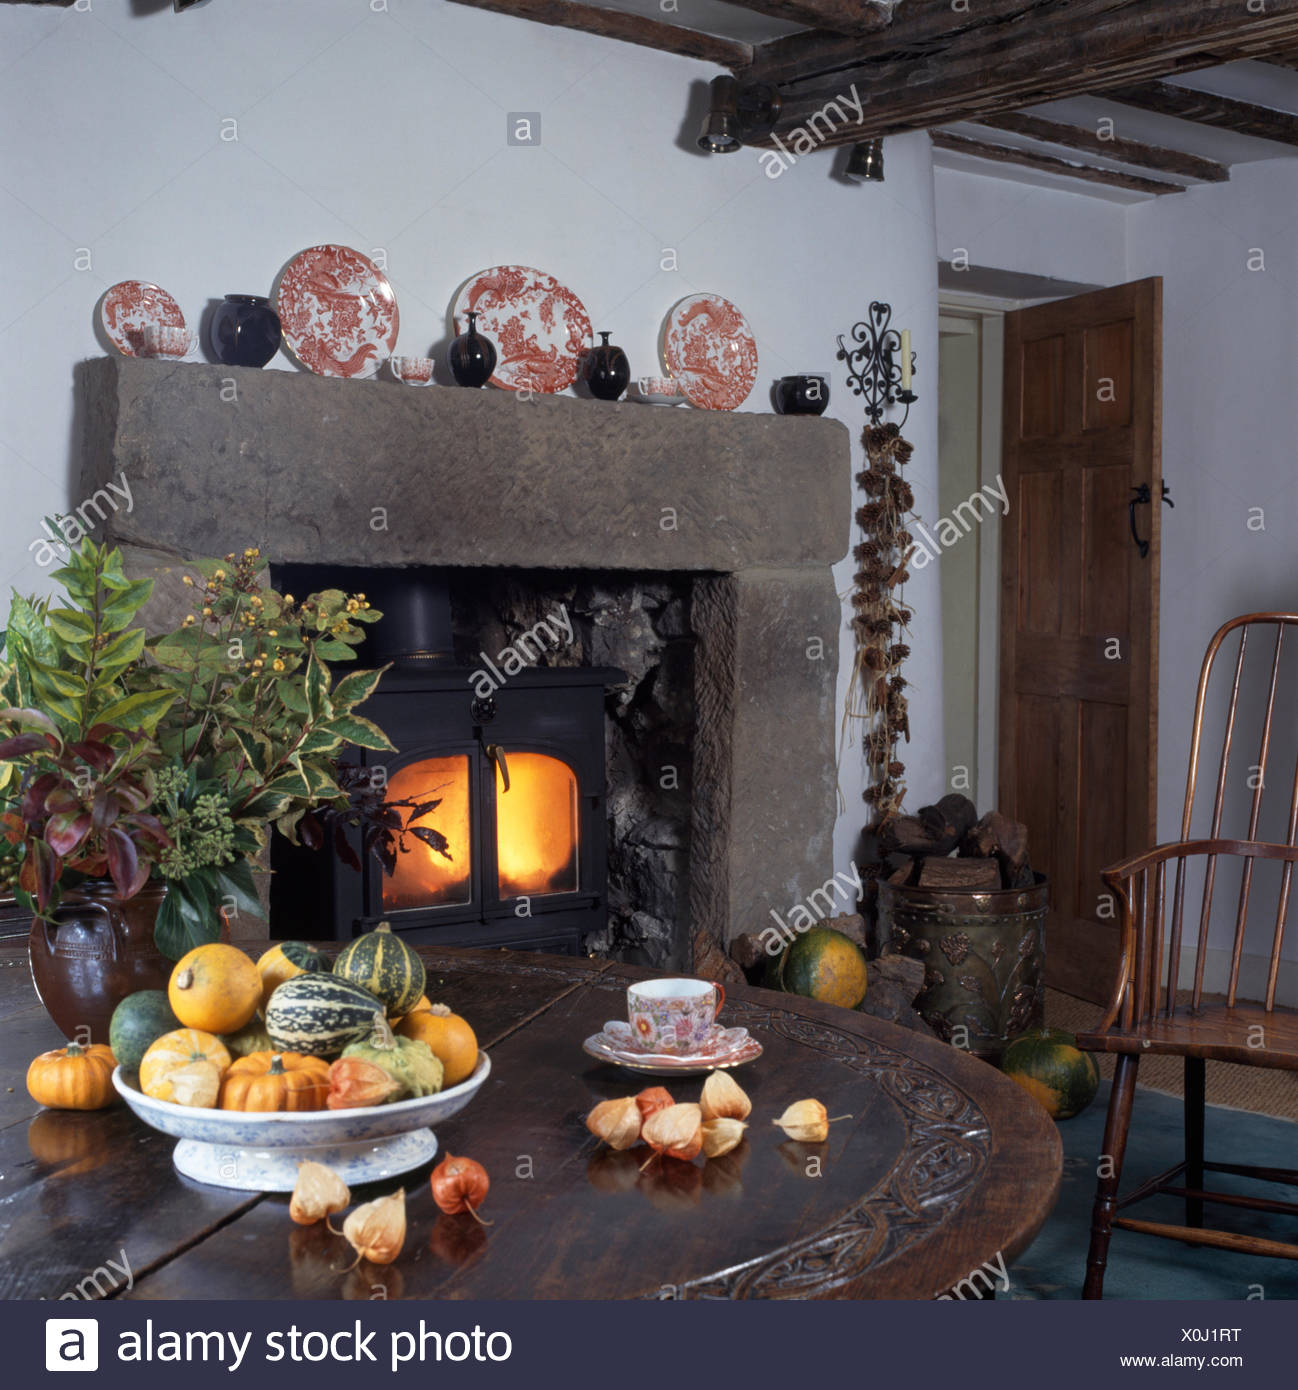 Bowl of gourds on table in country dining room with a wood burning stove in stone fireplace Stock Photo